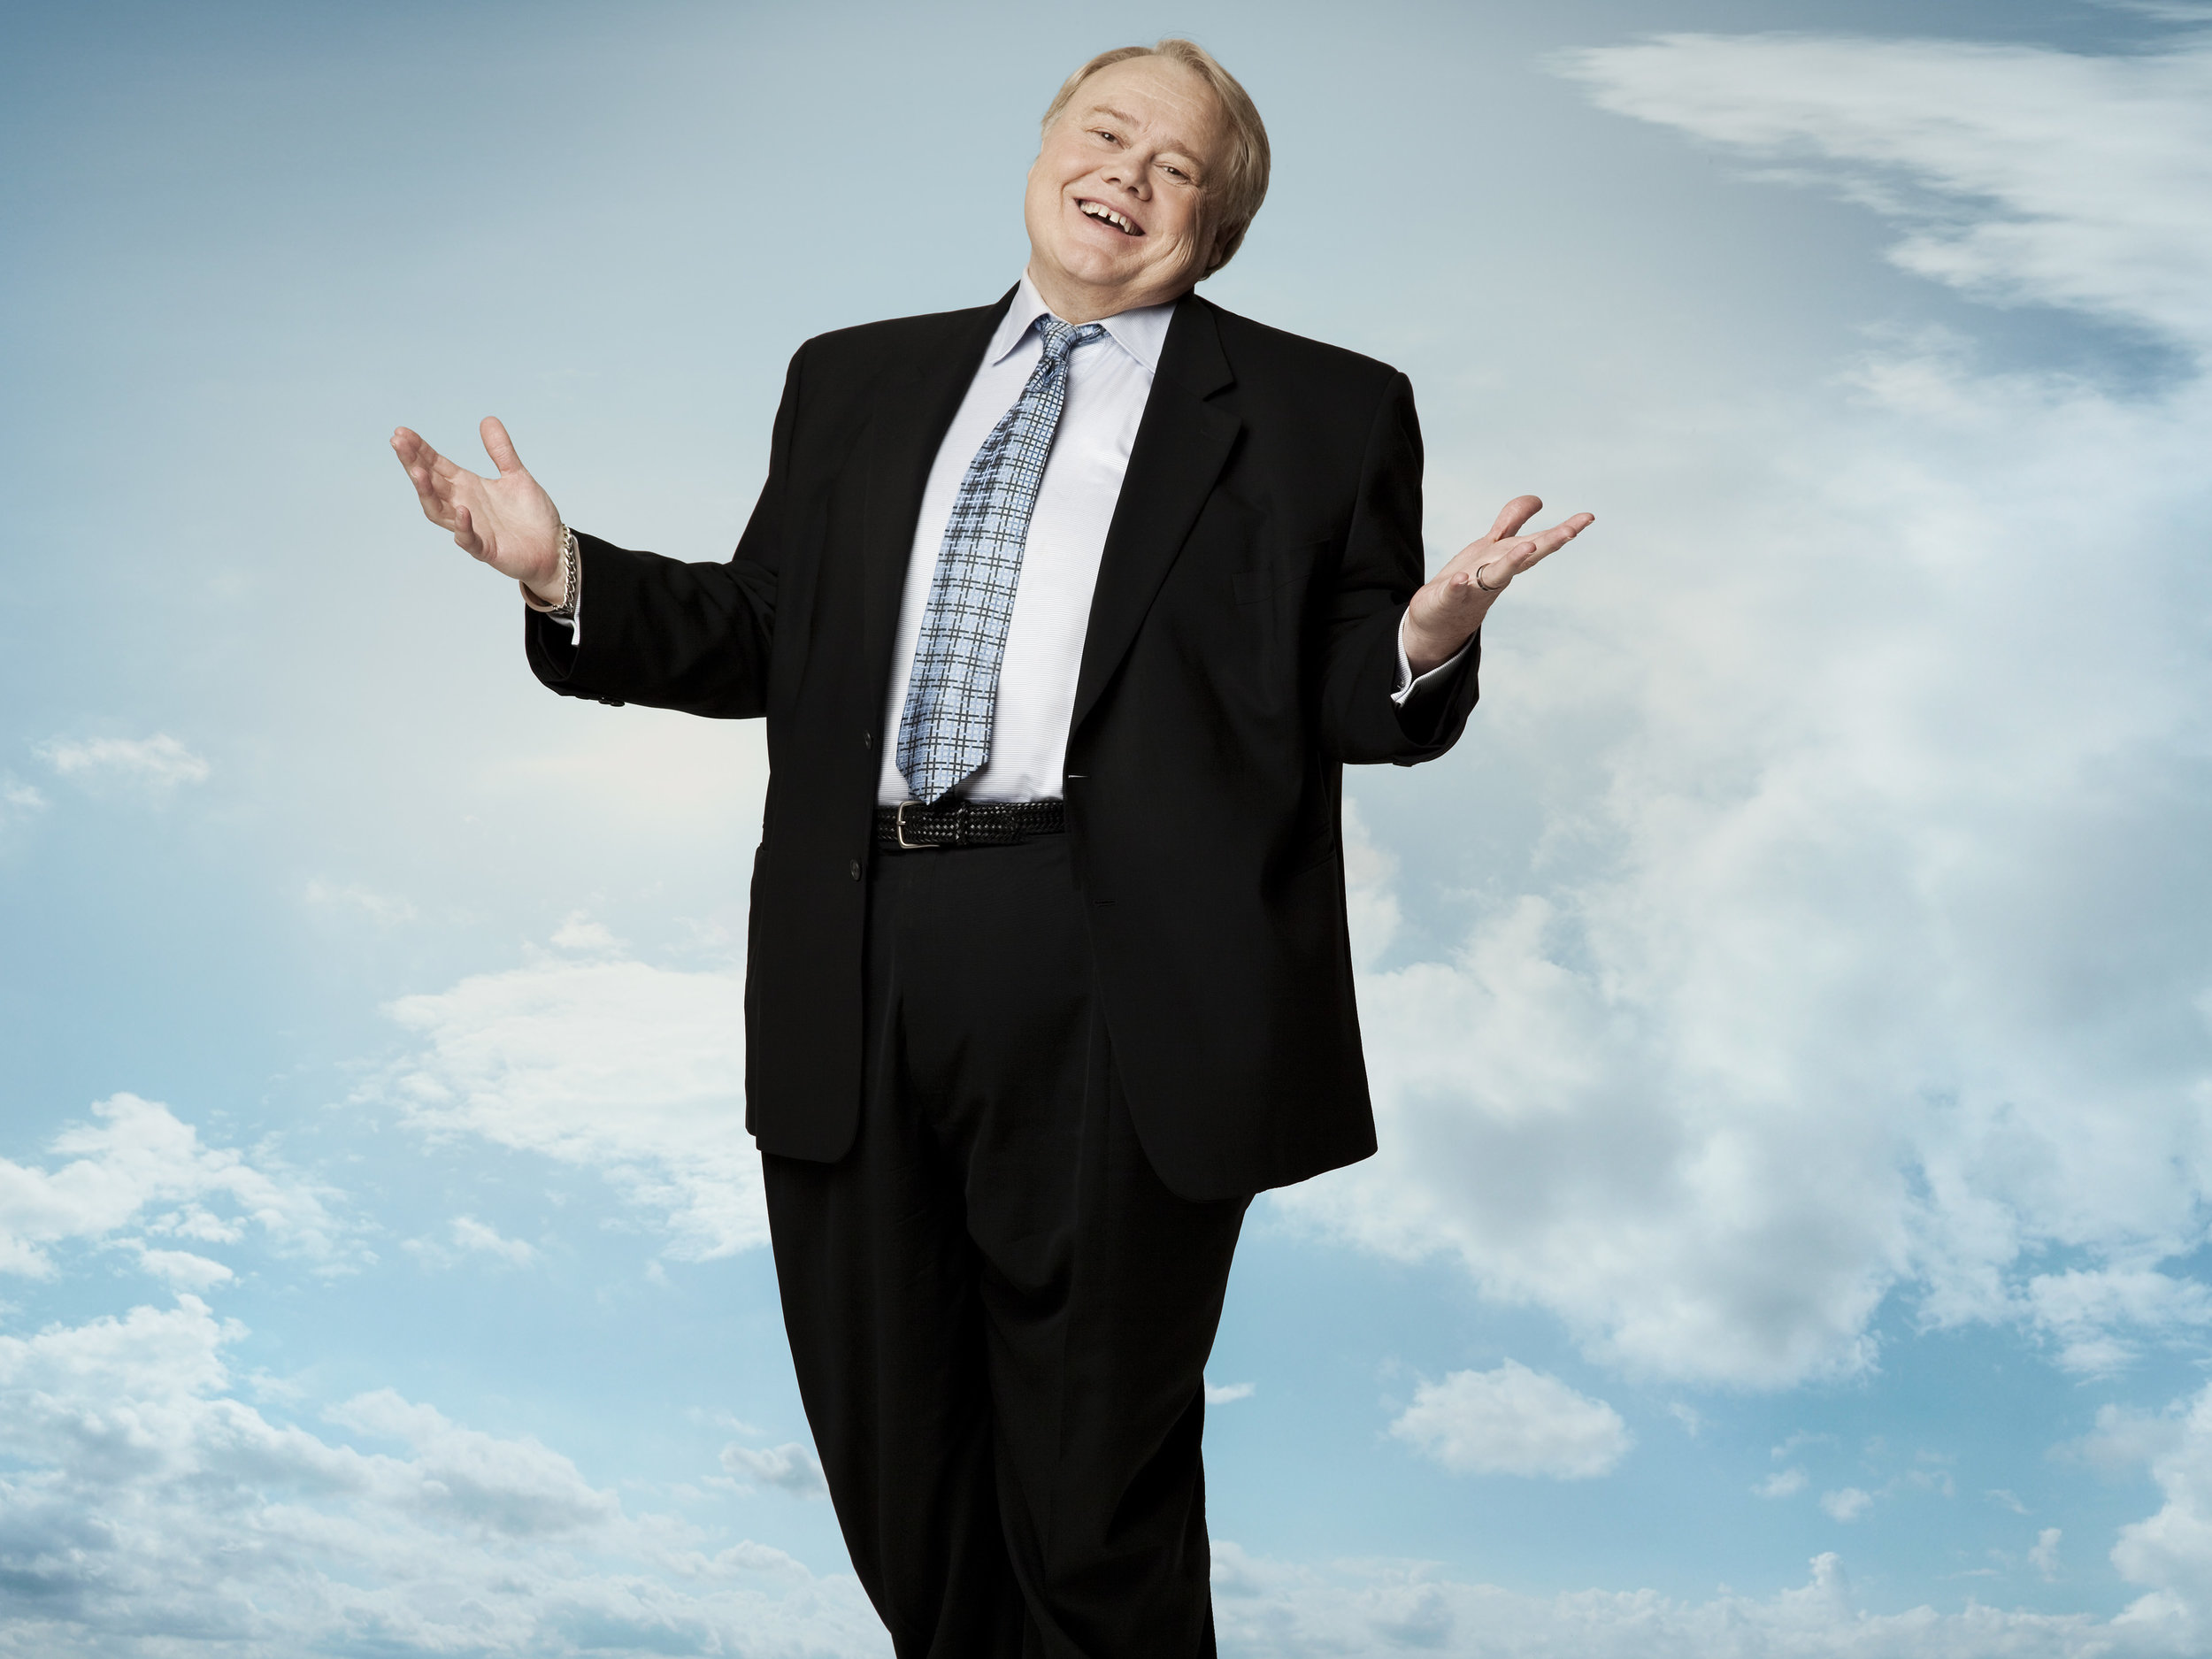 Louie Anderson Live at South Orange Performing Arts Center | 06.17.17 | 8 PM